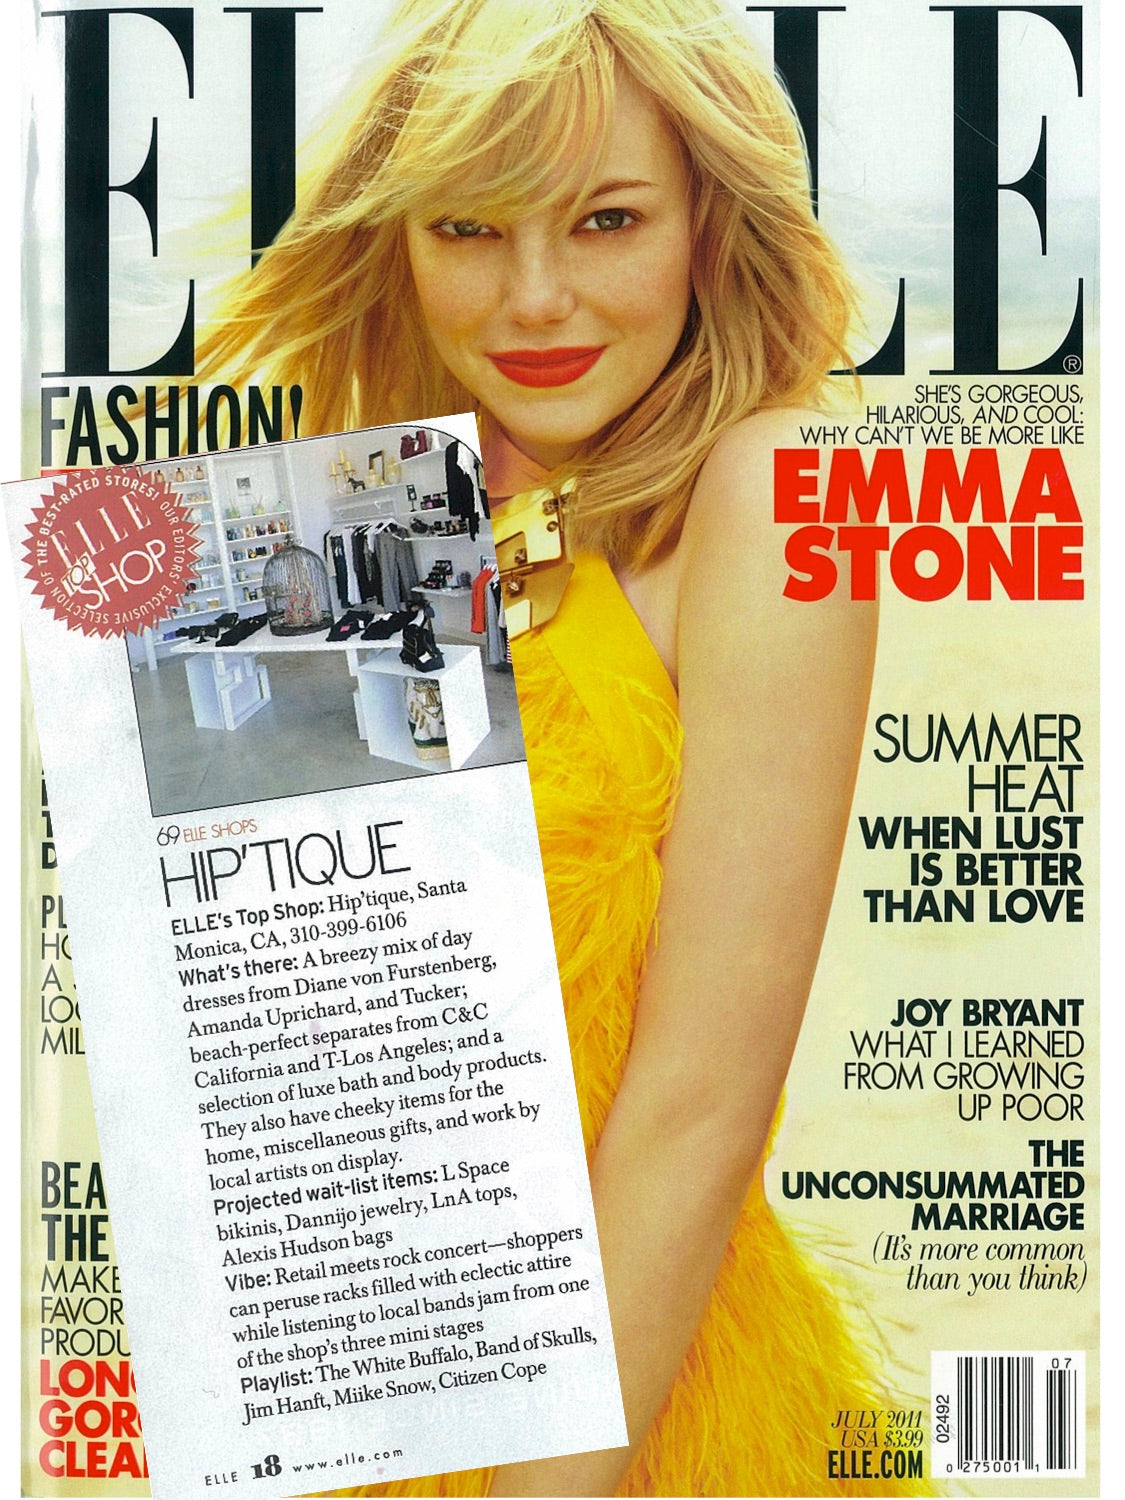 Hiptique Elle Cover Feature